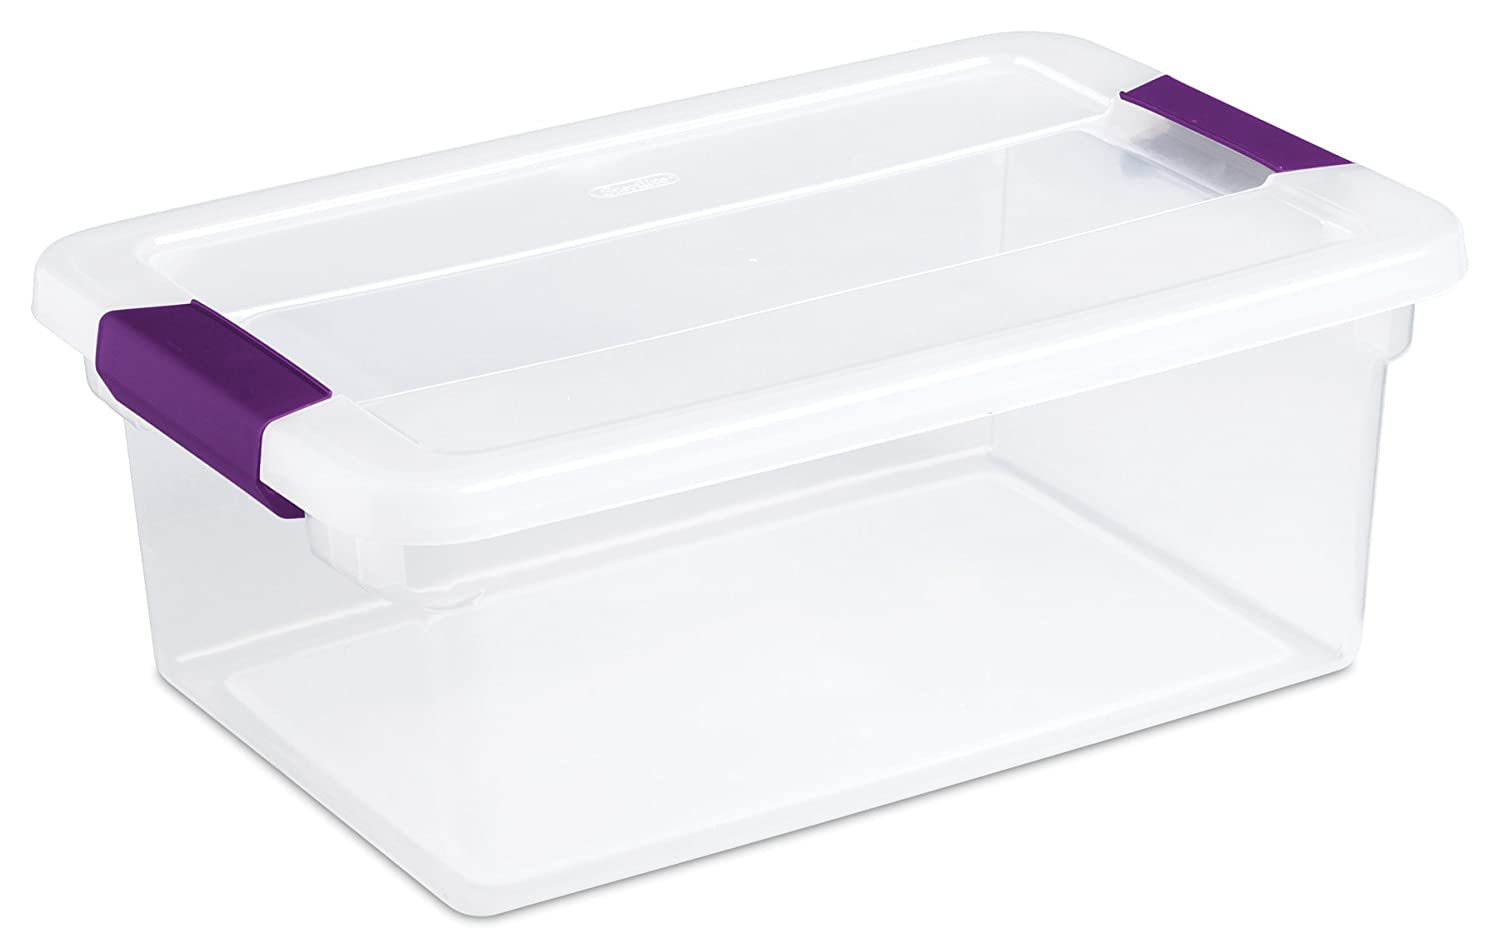 12 Pack Sterilite 17531712 15-Quart Clearview Latch Box Storage Tote Containers